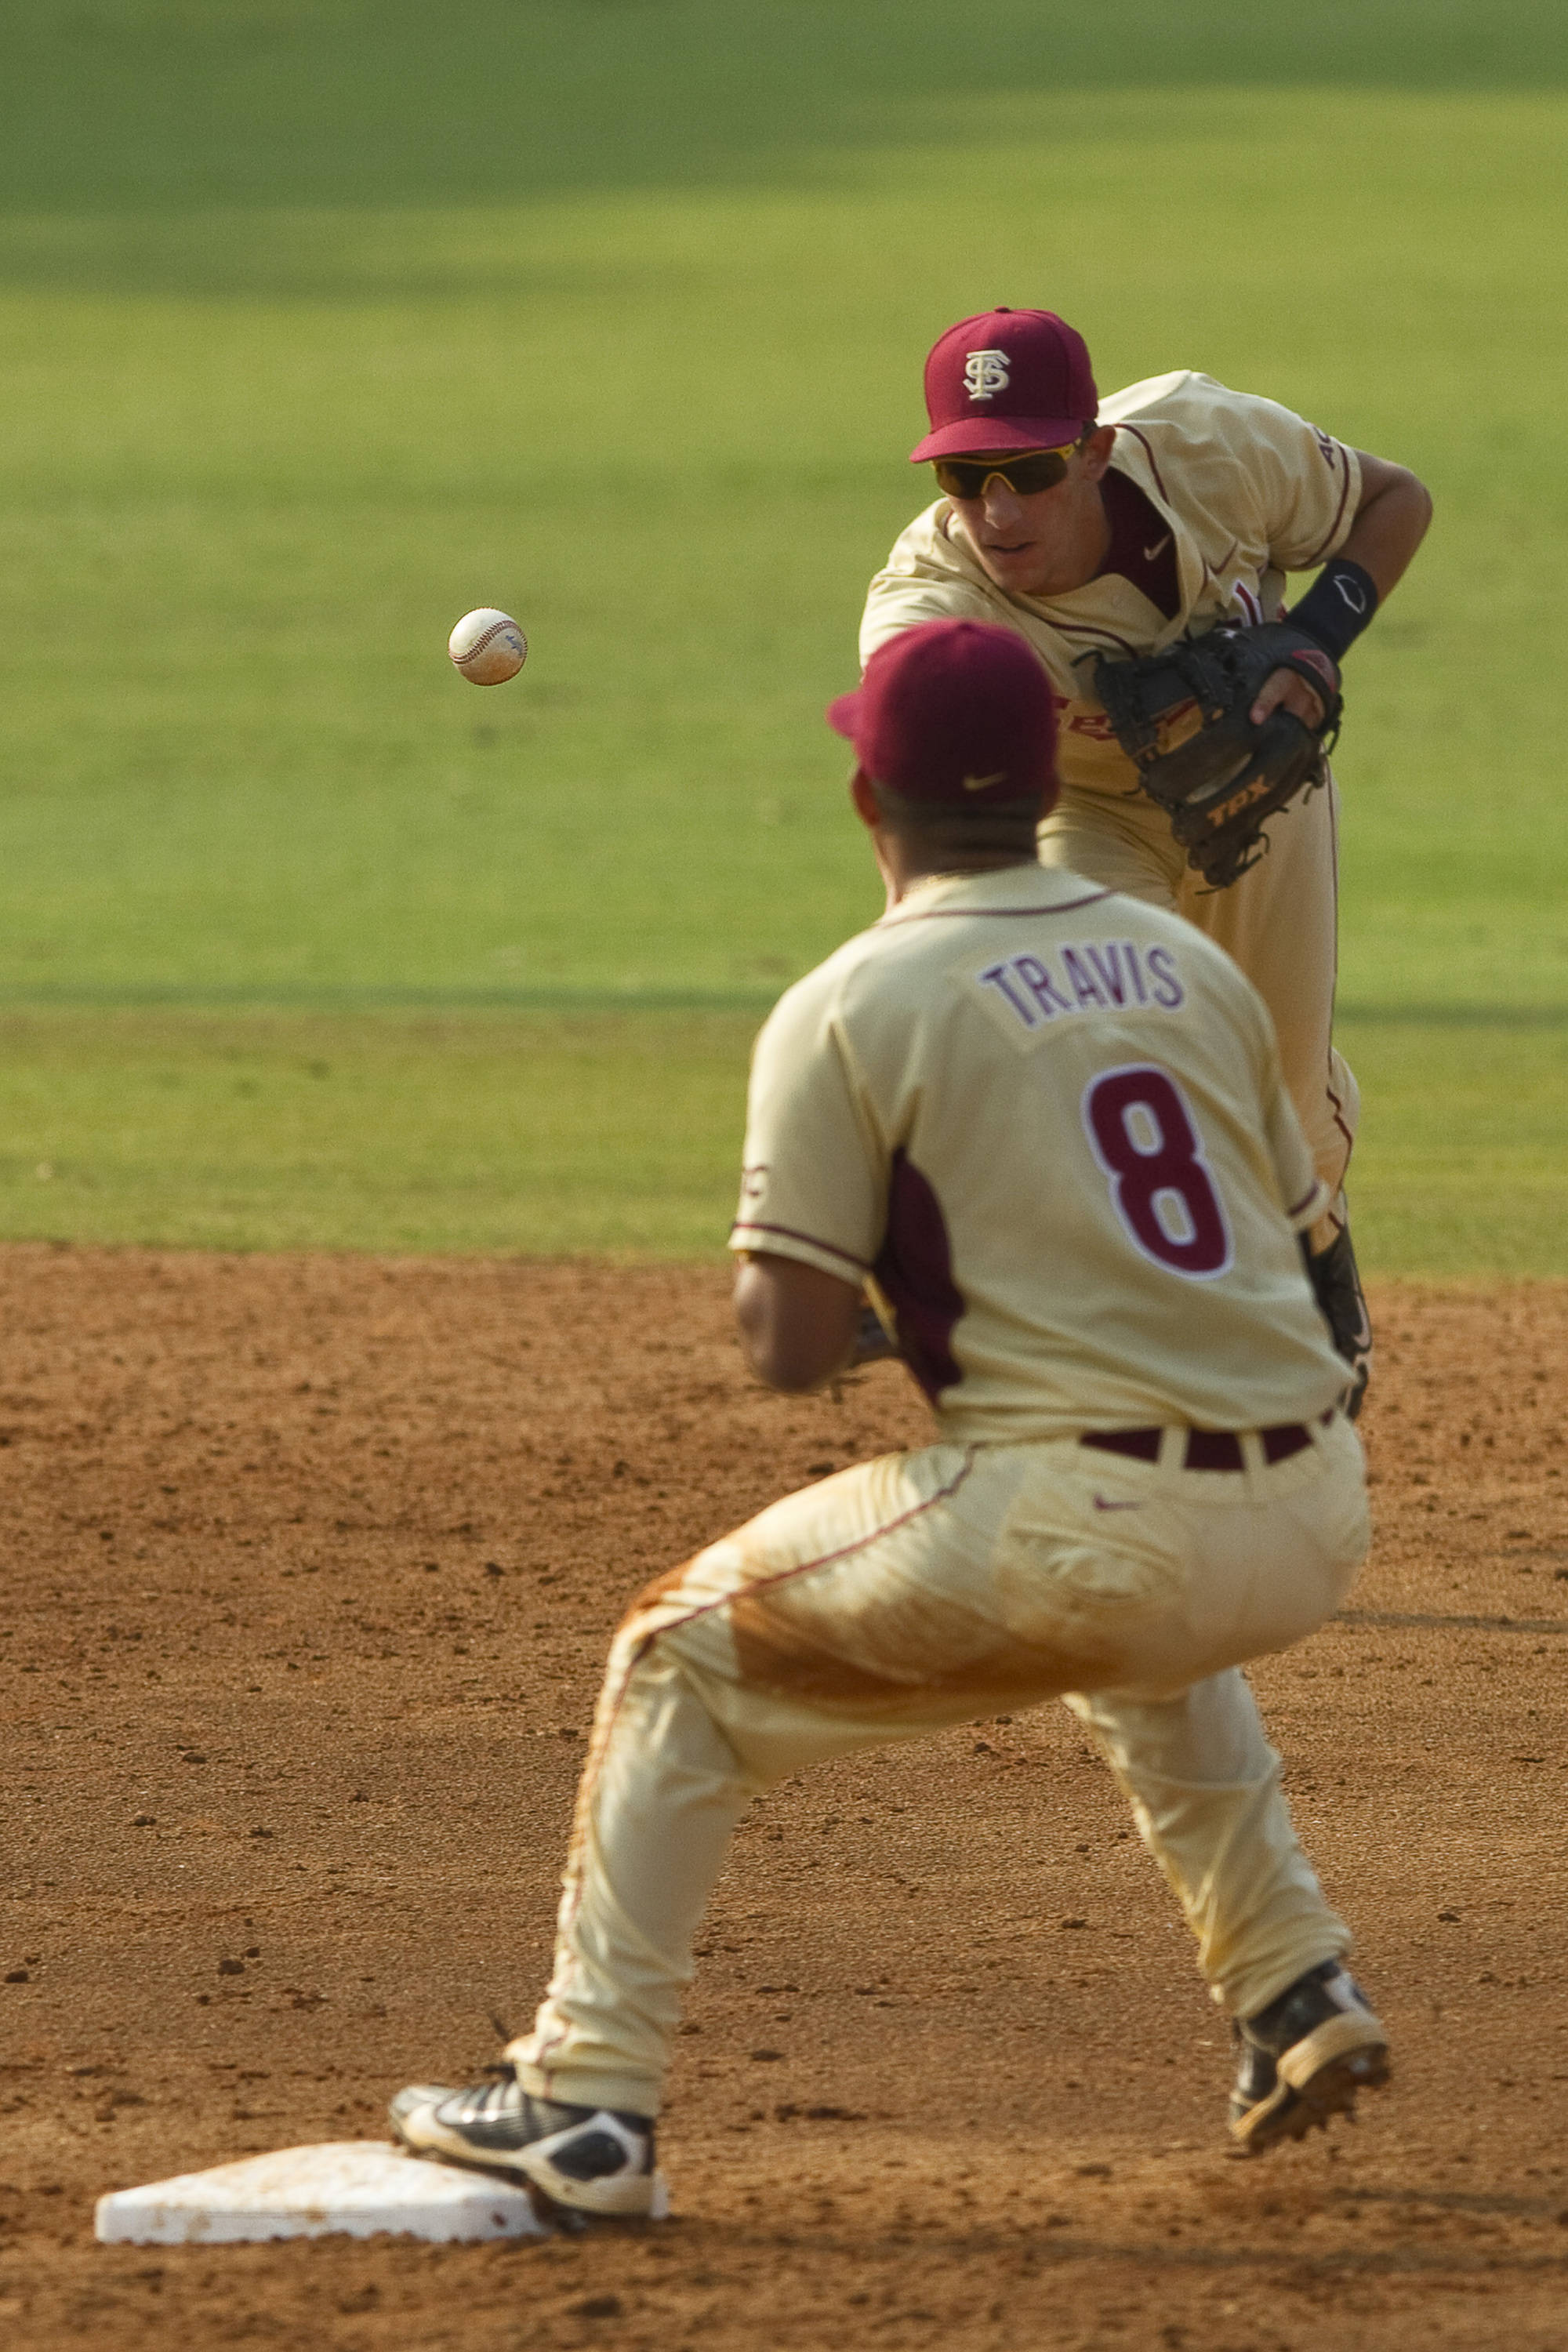 Justin Gonzalez (10) tosses the ball to Devon Travis (8) for a force out at second base.